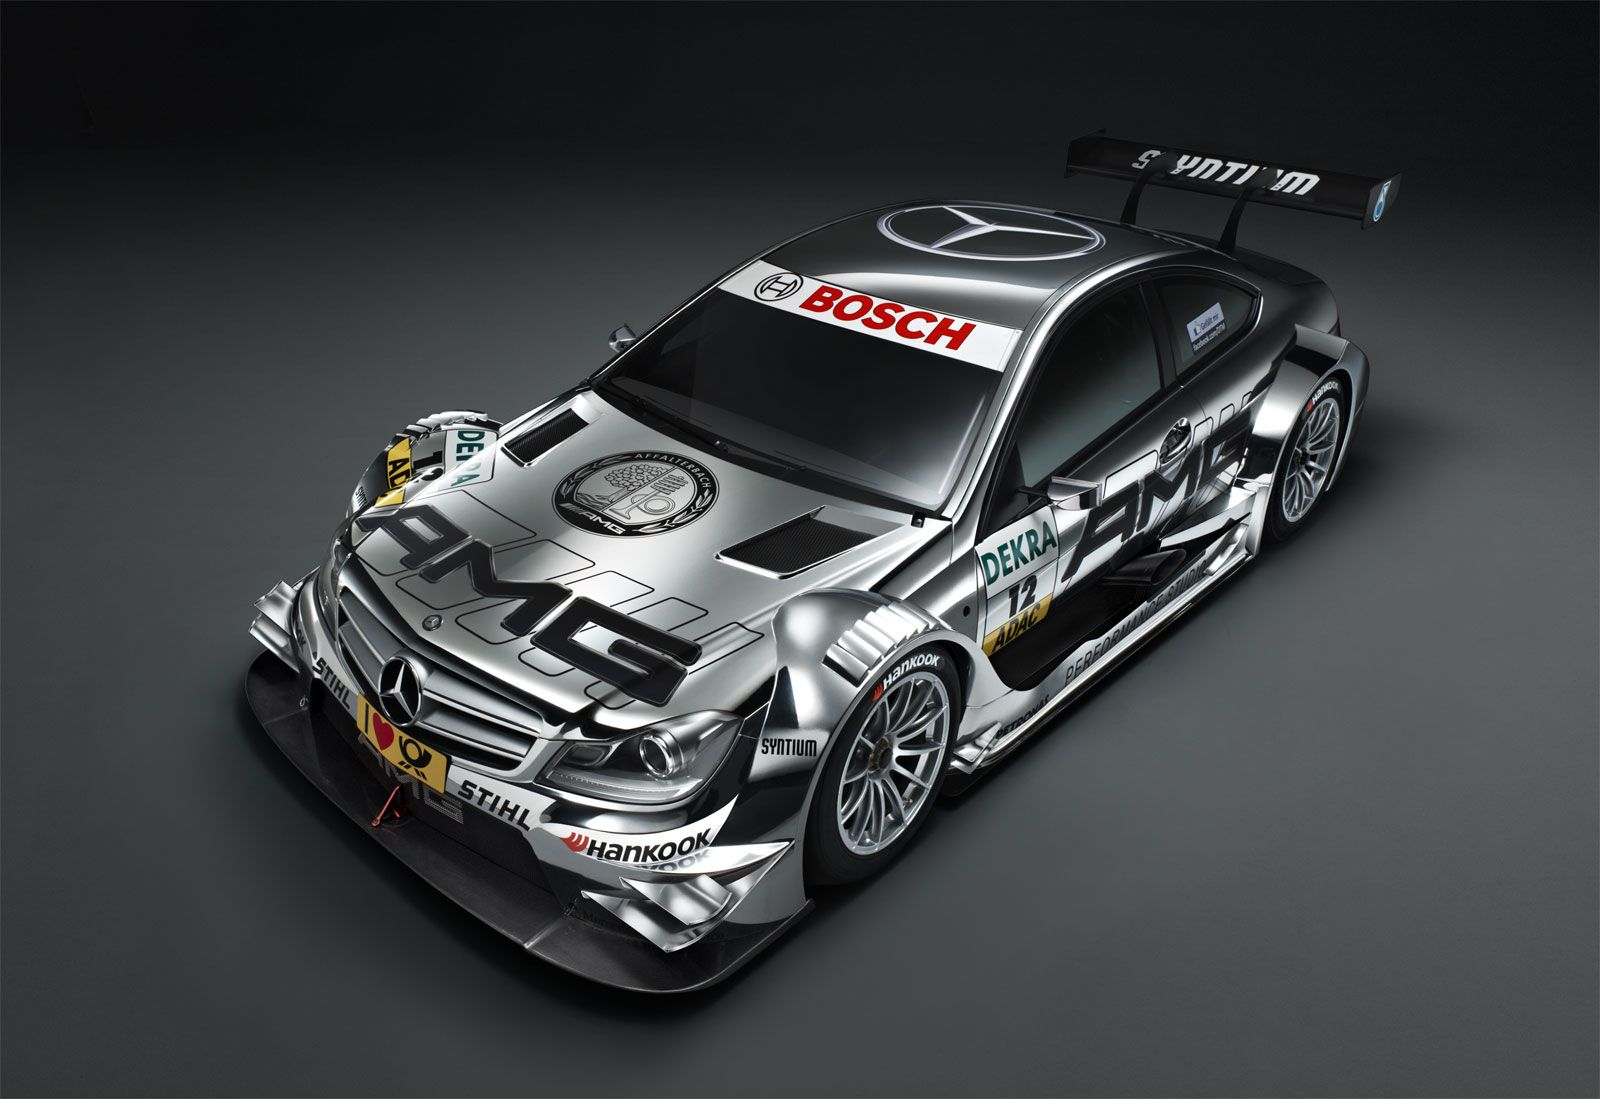 2012 Mercedes Benz C Coupe Amg Dtm Race Car